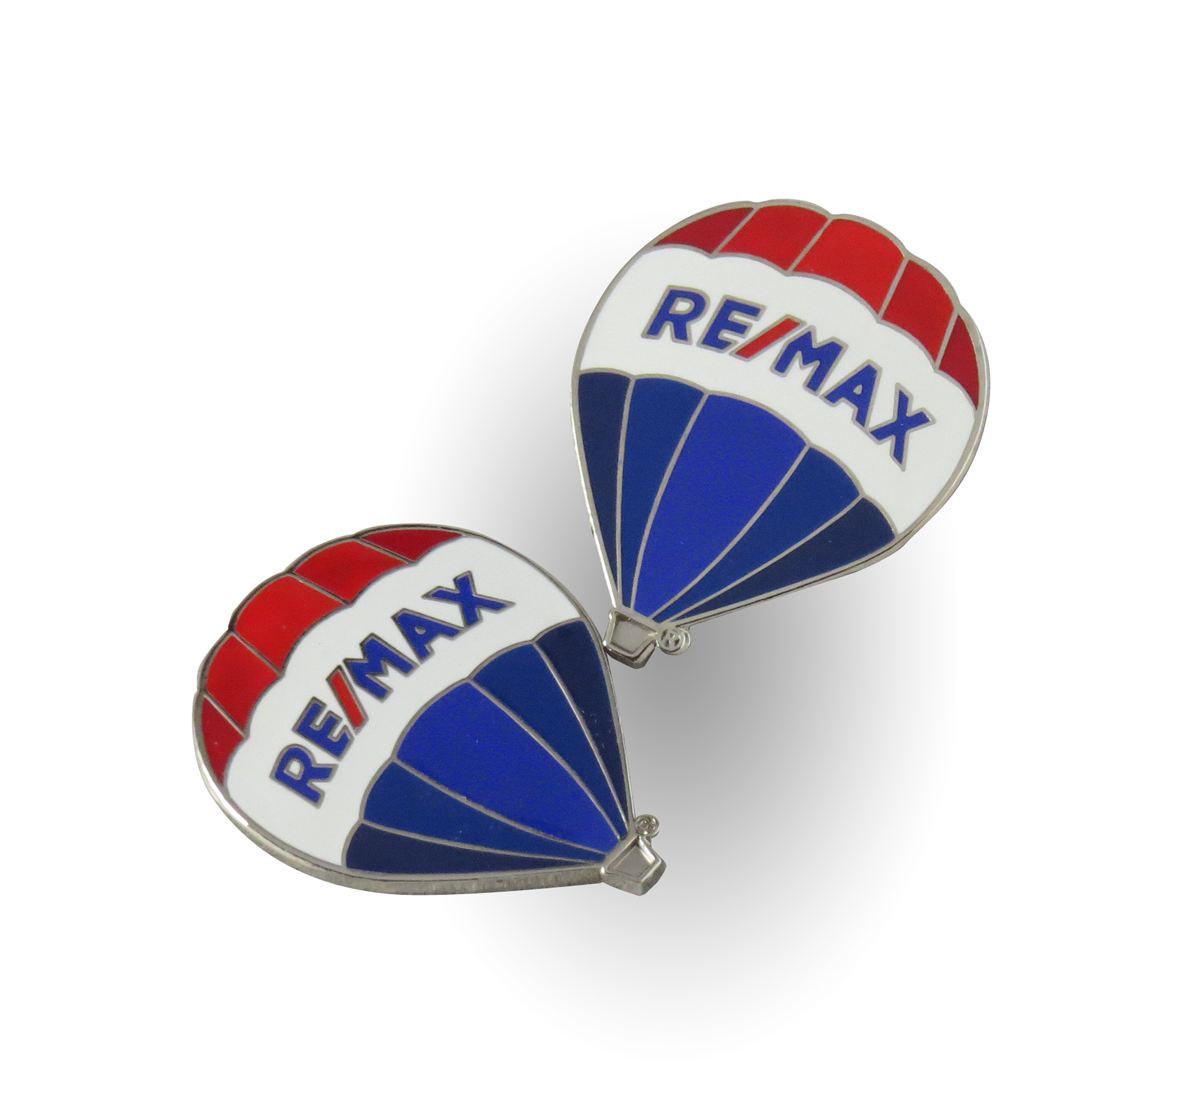 Picture of RE/MAX Lapel Pin